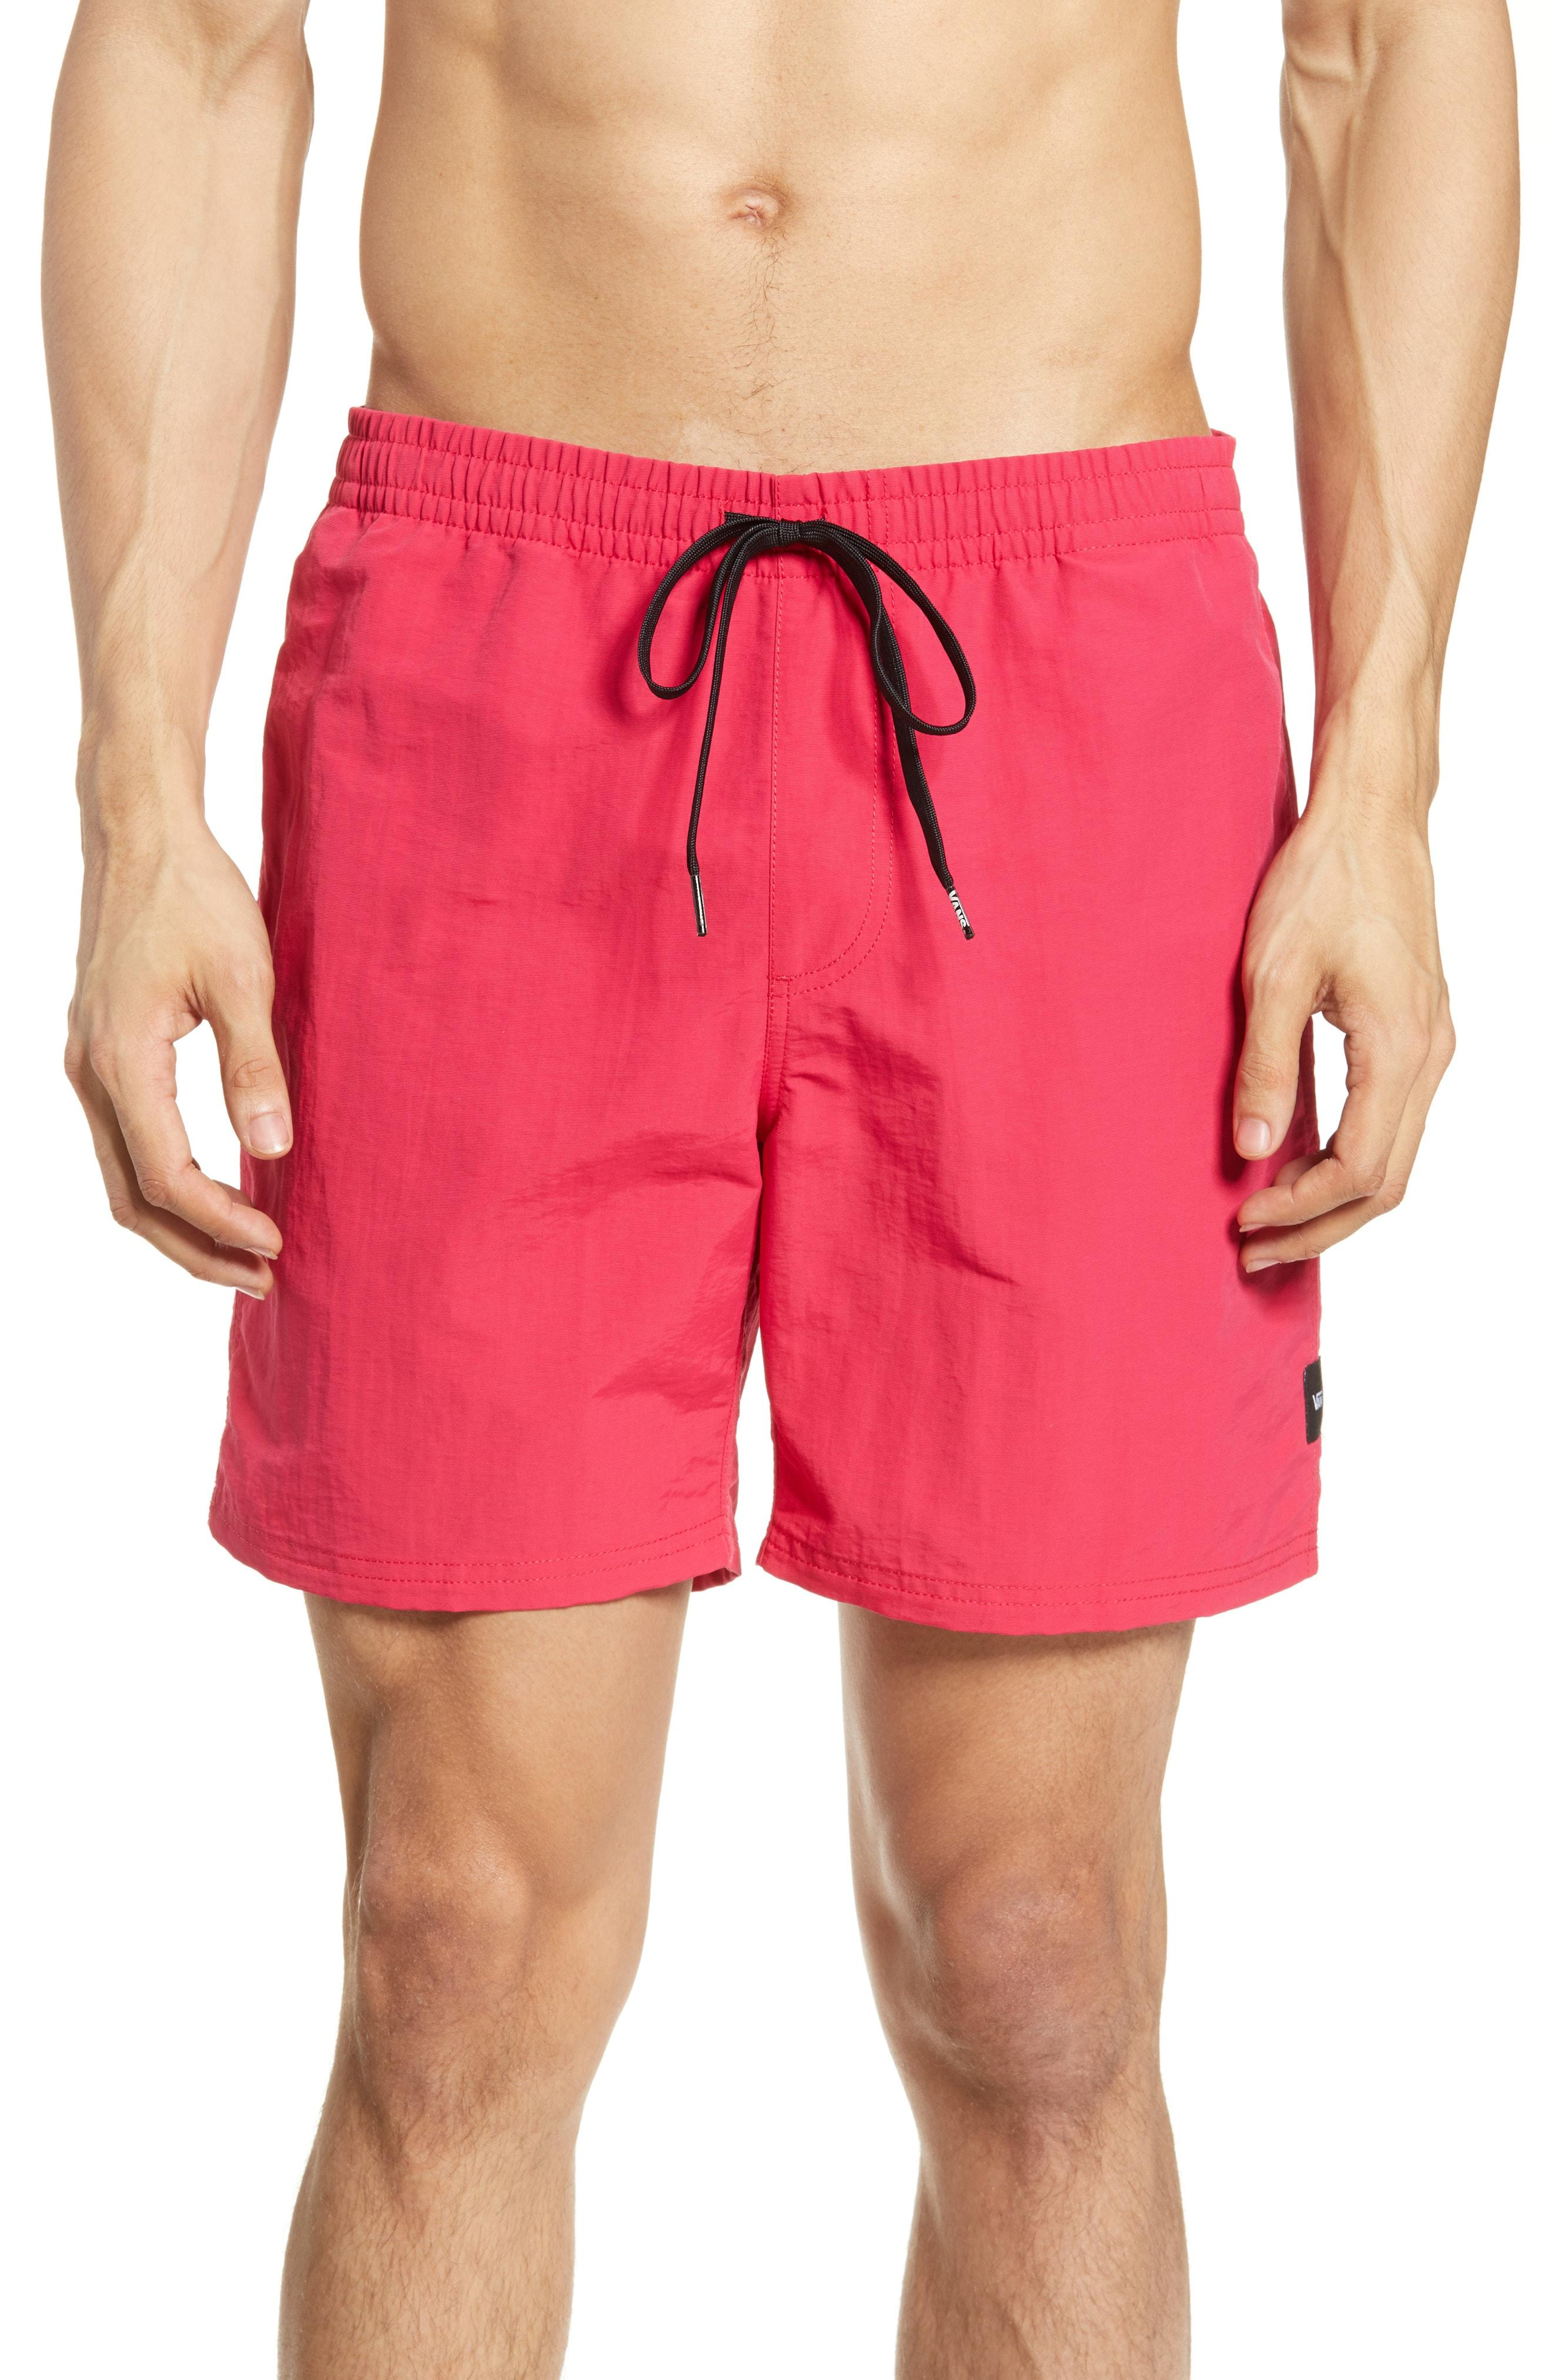 b776f7e4be79a Lyst - Vans Primary Volley Shorts in Pink for Men